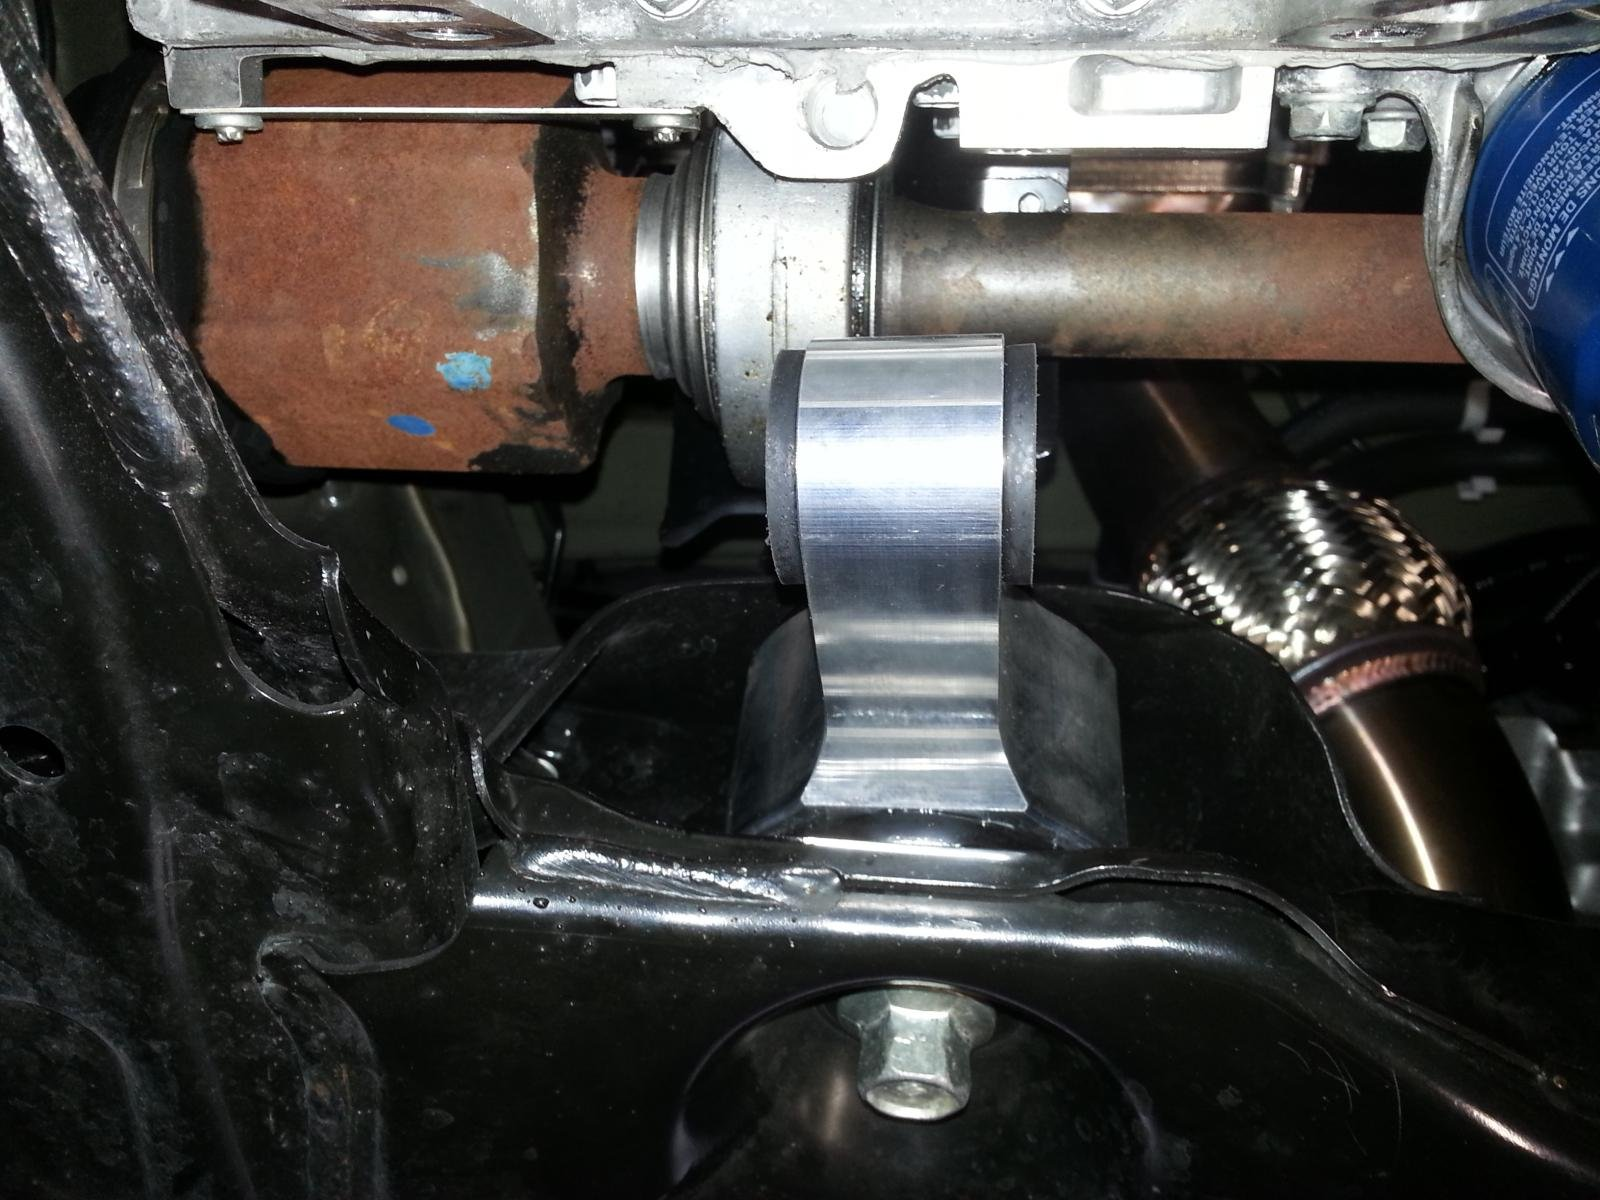 How To Replace Motor Mount On 2007 Honda Civic | Automotivegarage.org